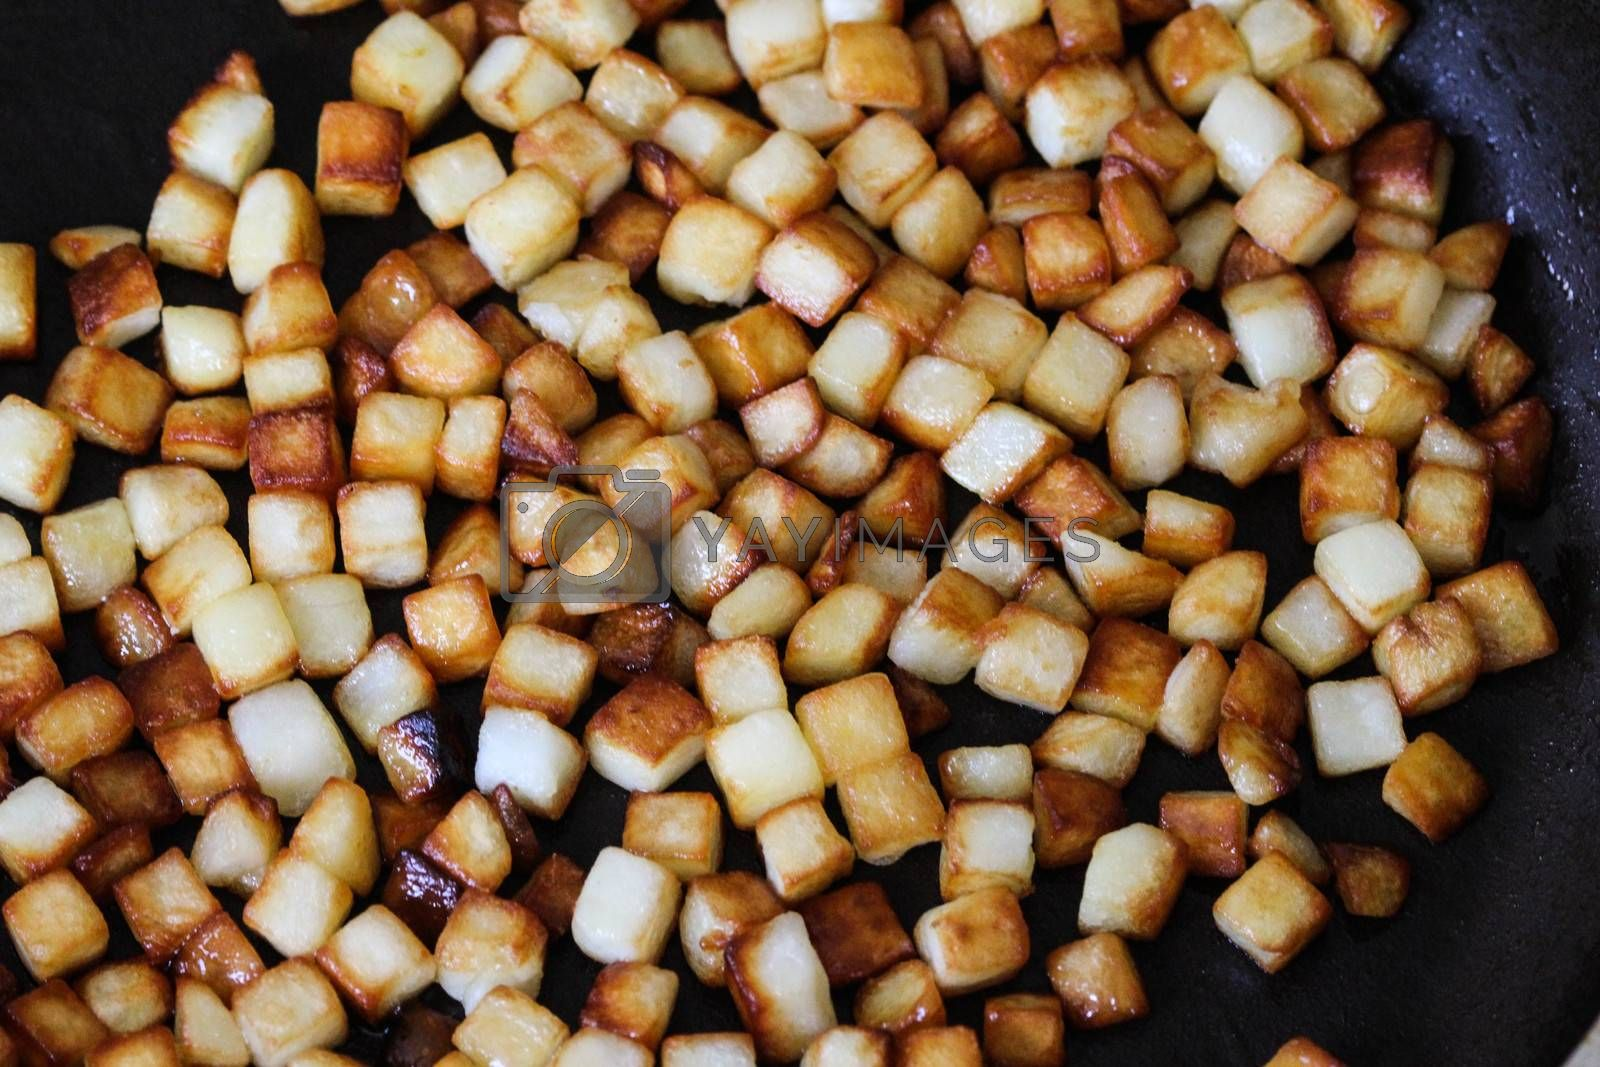 Royalty free image of baked potato cubes in pan in kitchen by michaelmeijer